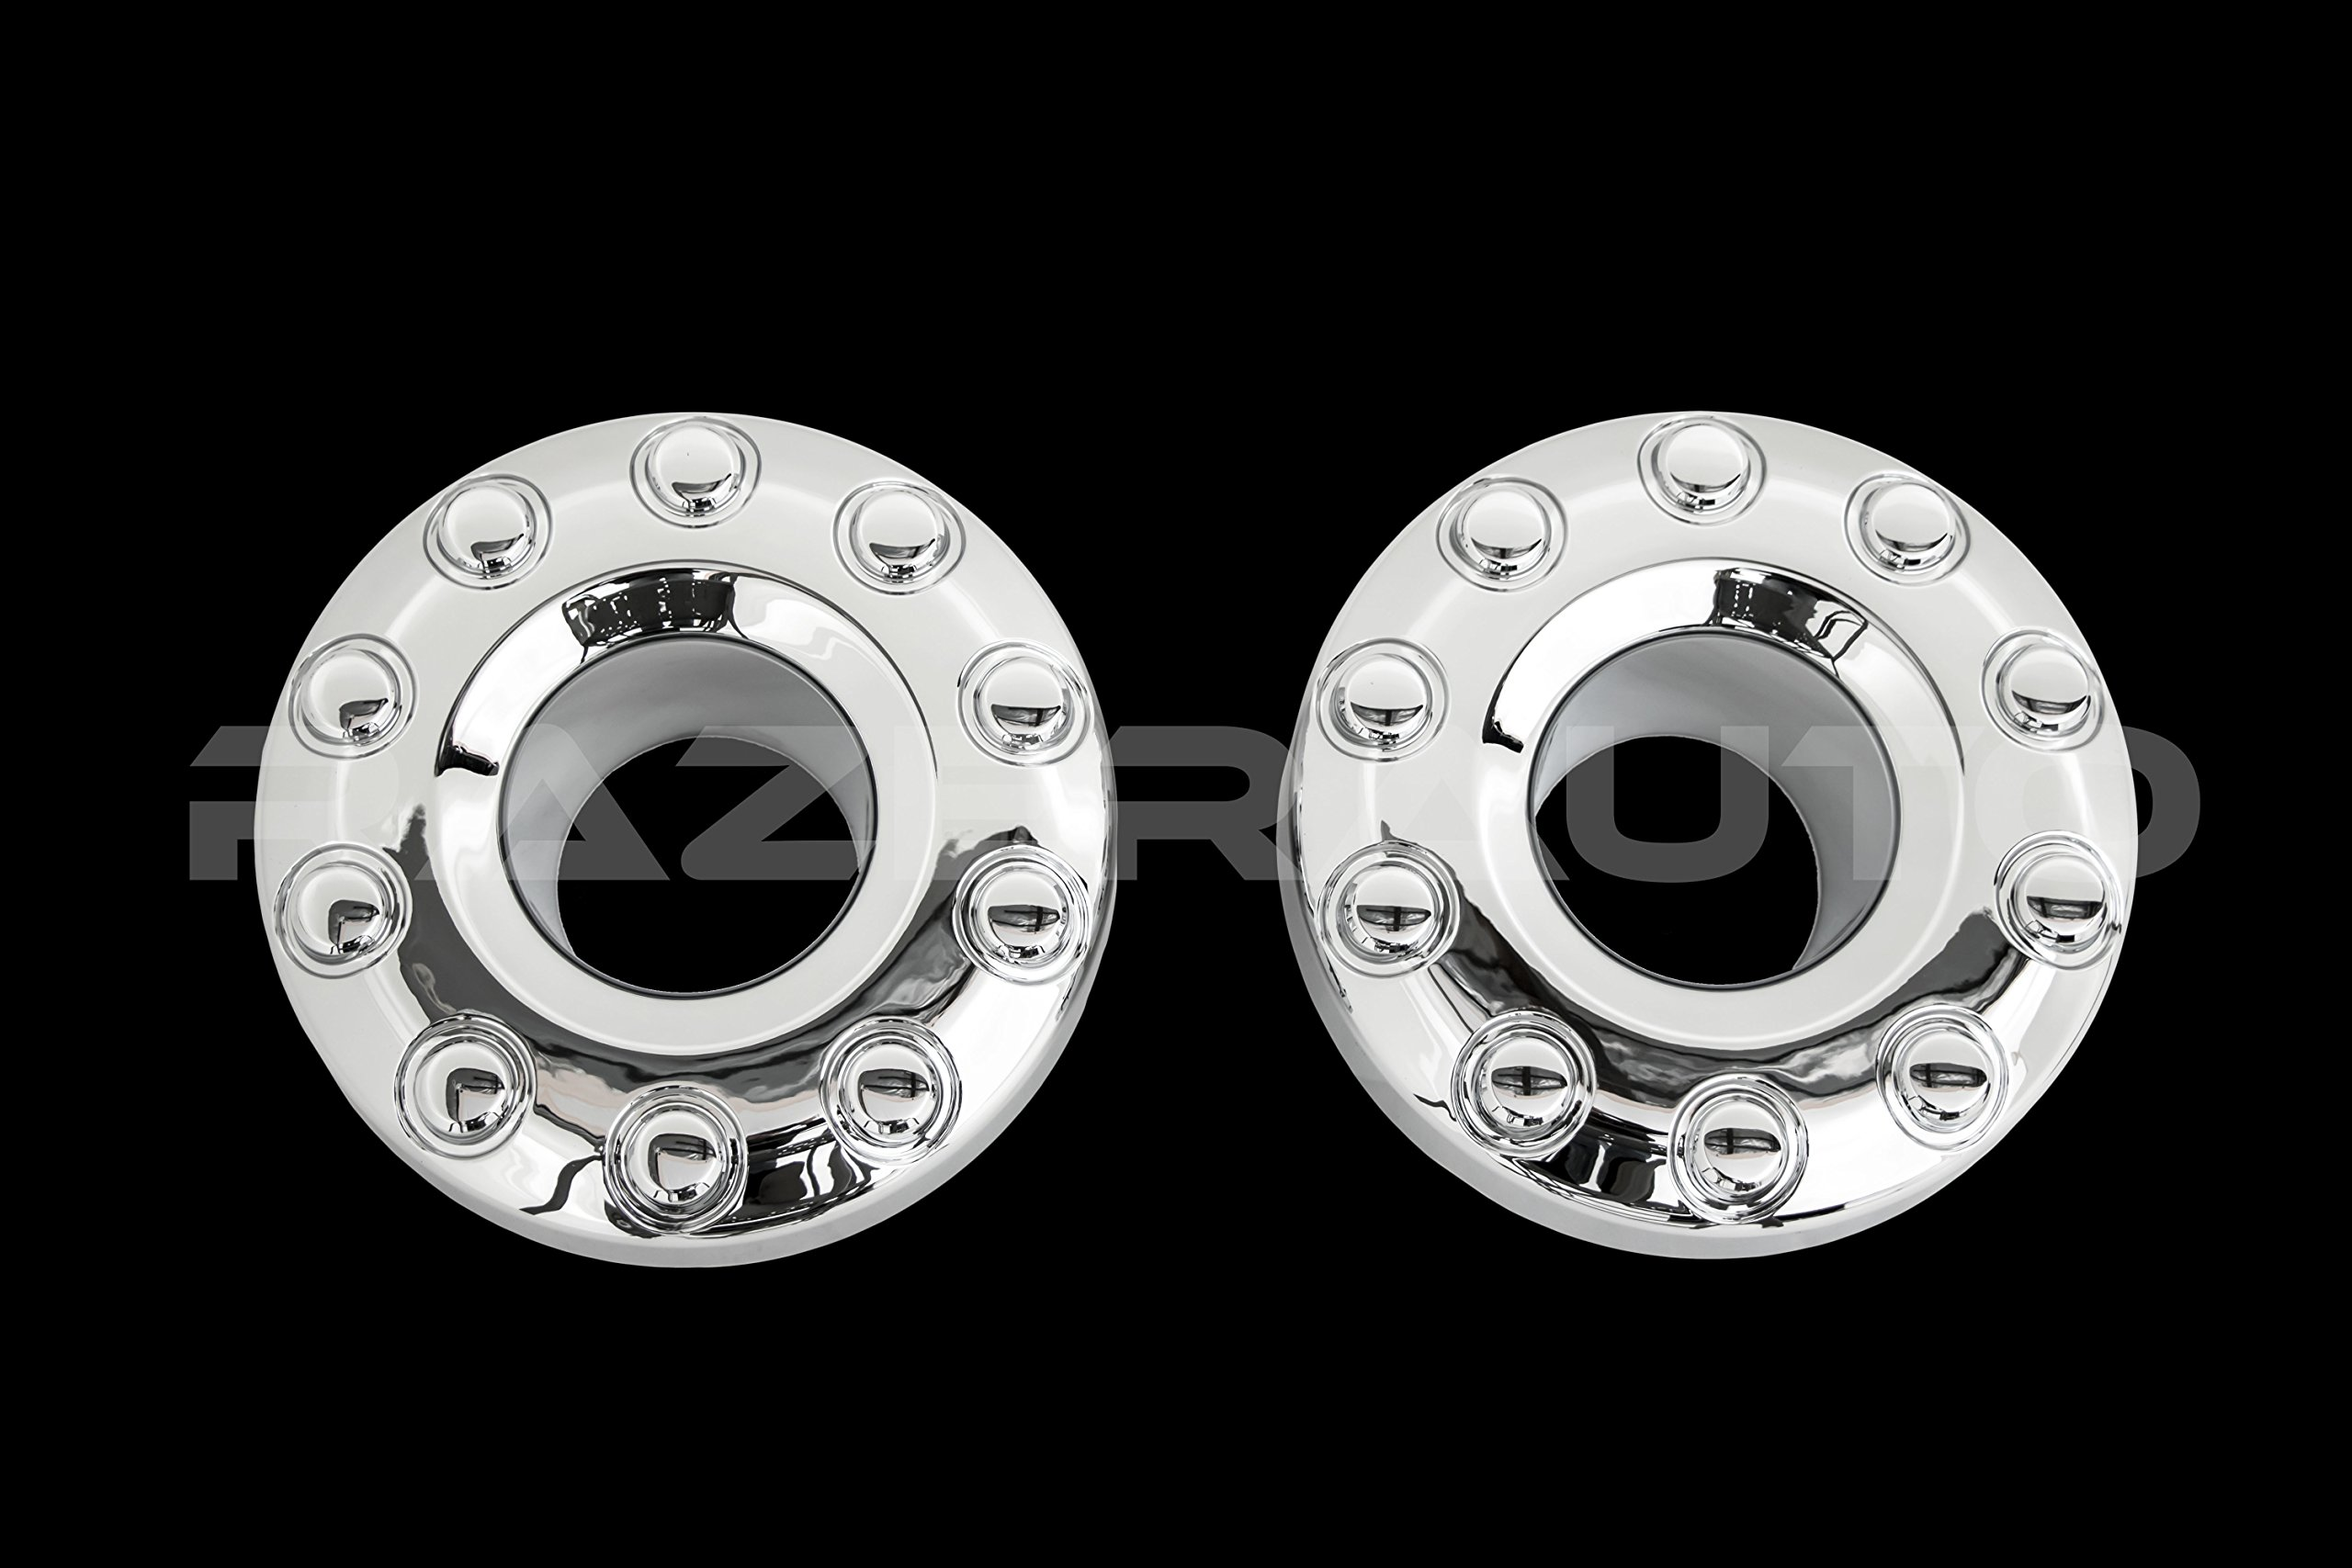 05-17 Ford Super Duty F350+F450+F550 Dually Truck ONLY Chrome 10 Lug FRONT+REAR Wheel Center Hub Cap 4pcs Set by Razer Auto (Image #2)